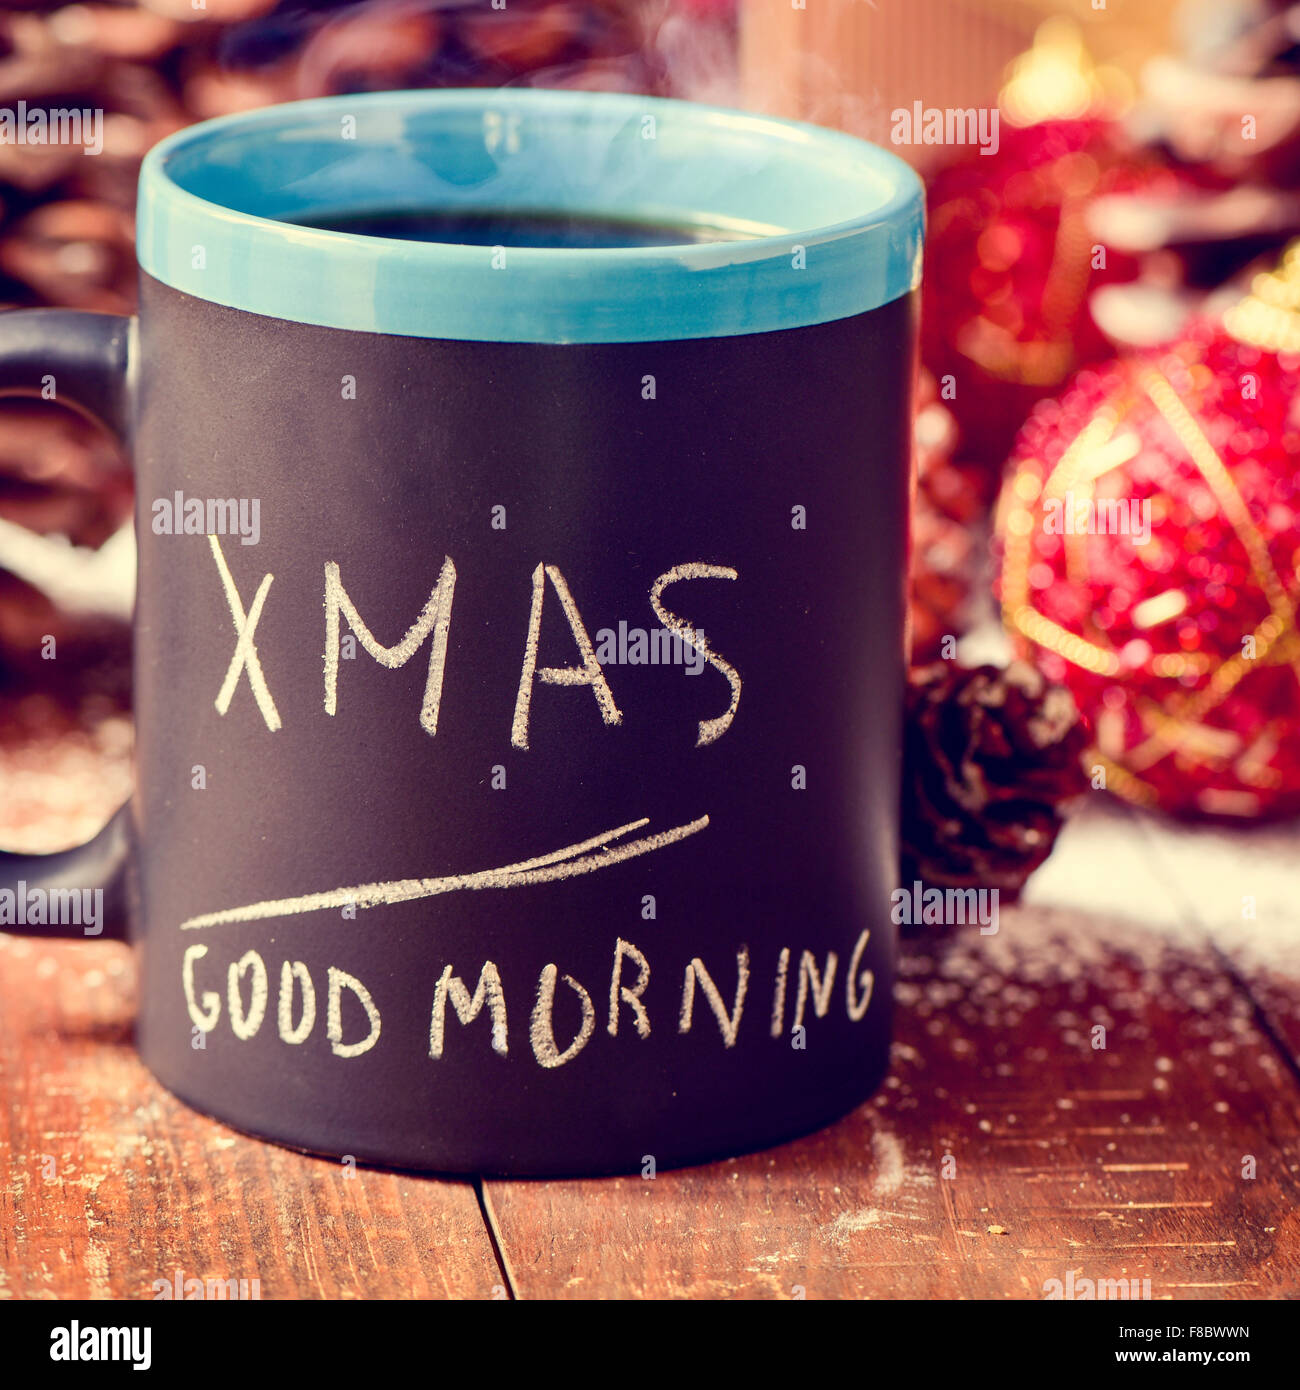 text xmas good morning written in a black mug with coffee or tea on a rustic wooden table with some pinecones and - Stock Image